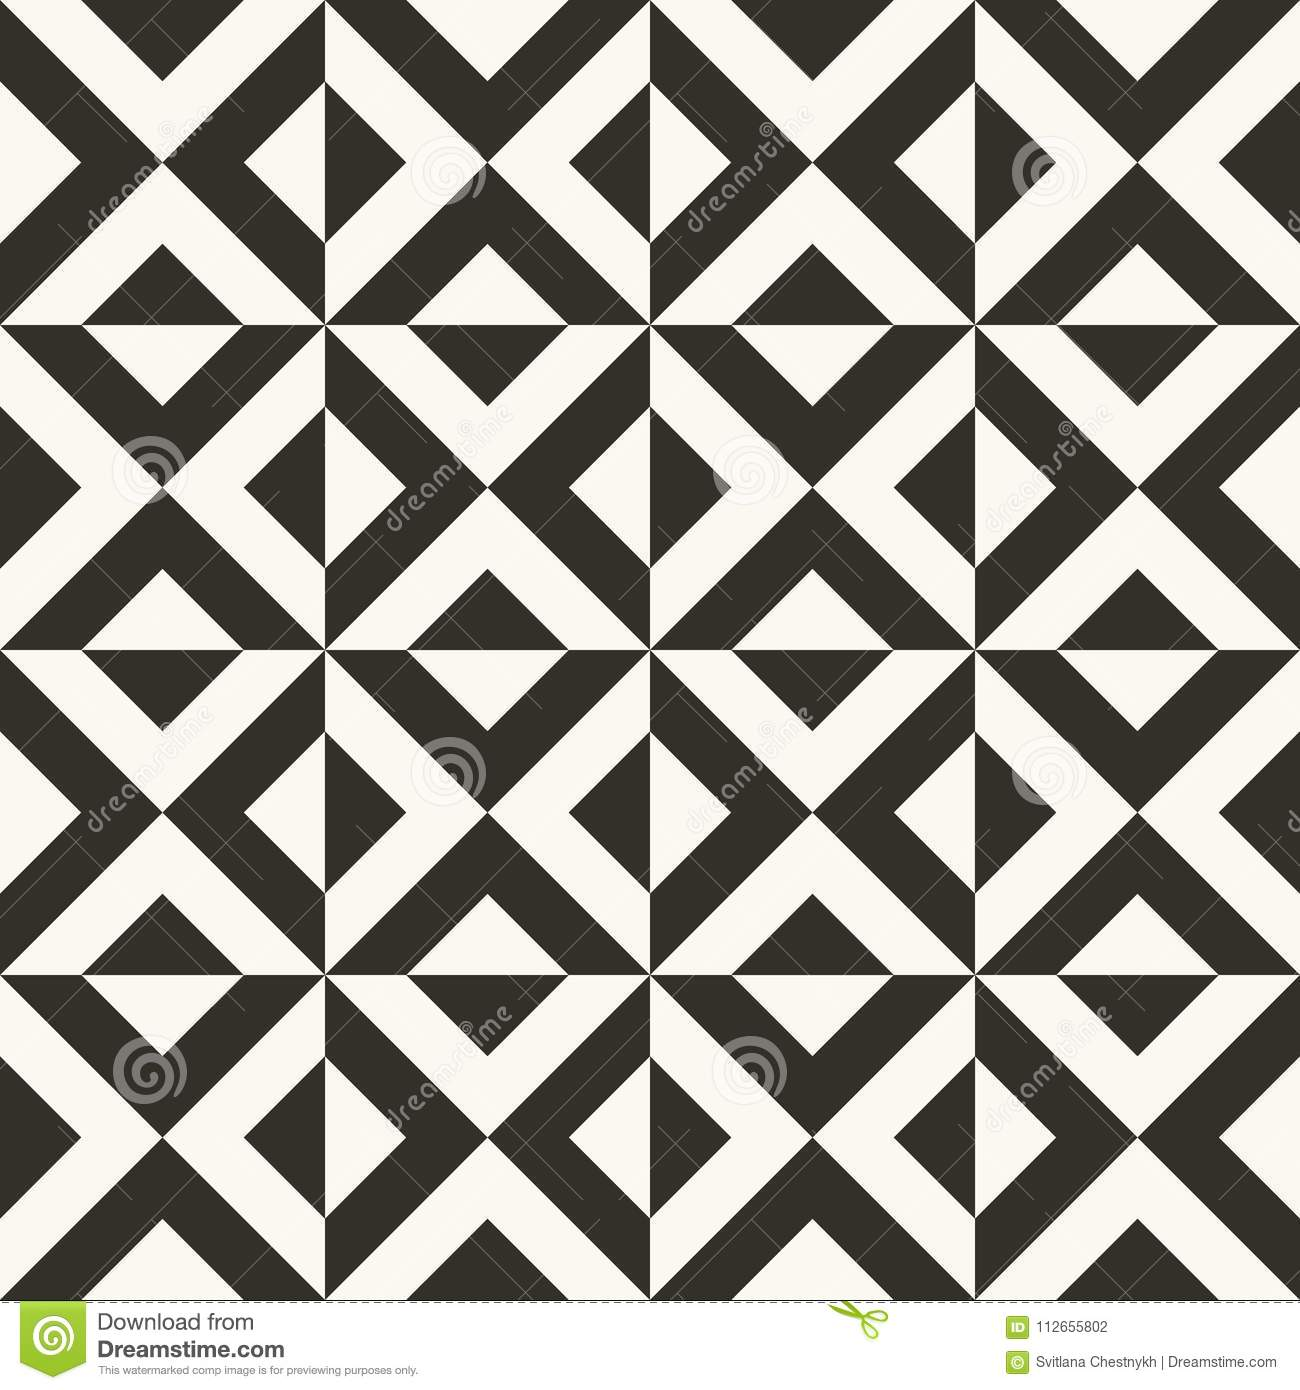 Black and white abstract geometric quilt pattern high contrast geometric background with triangles simple colors easy to recolor minimal background